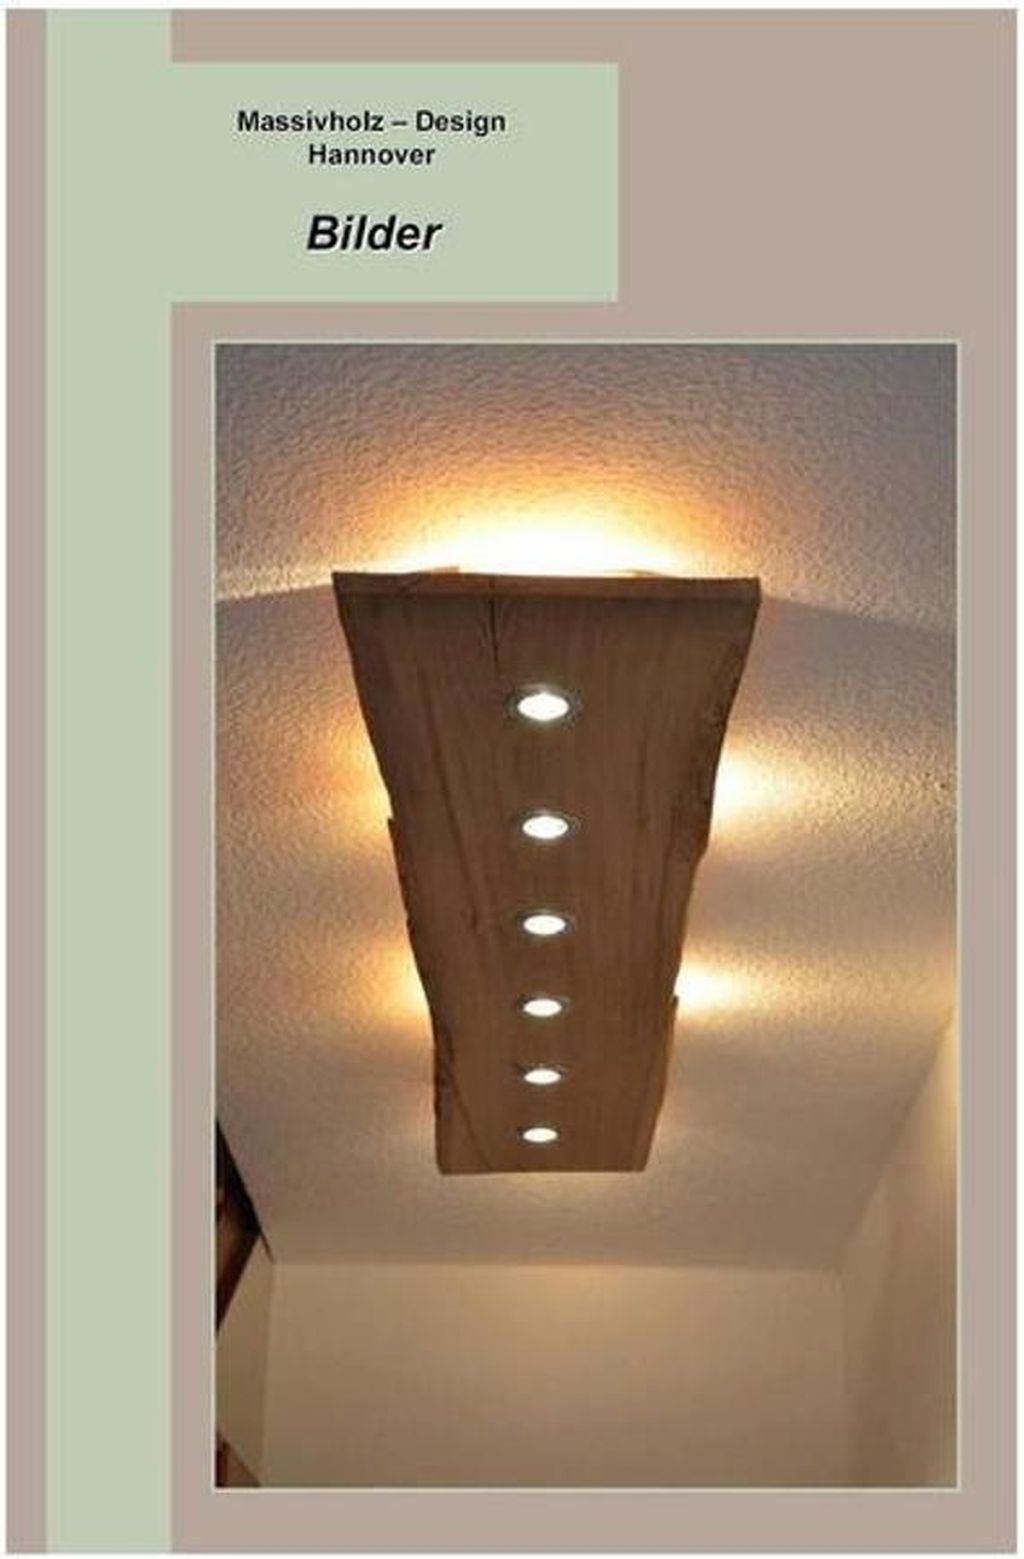 40 Affordable Ceiling Design Ideas With Decorative Lamp Lamp Decor Solid Wood Design Ceiling Lamp